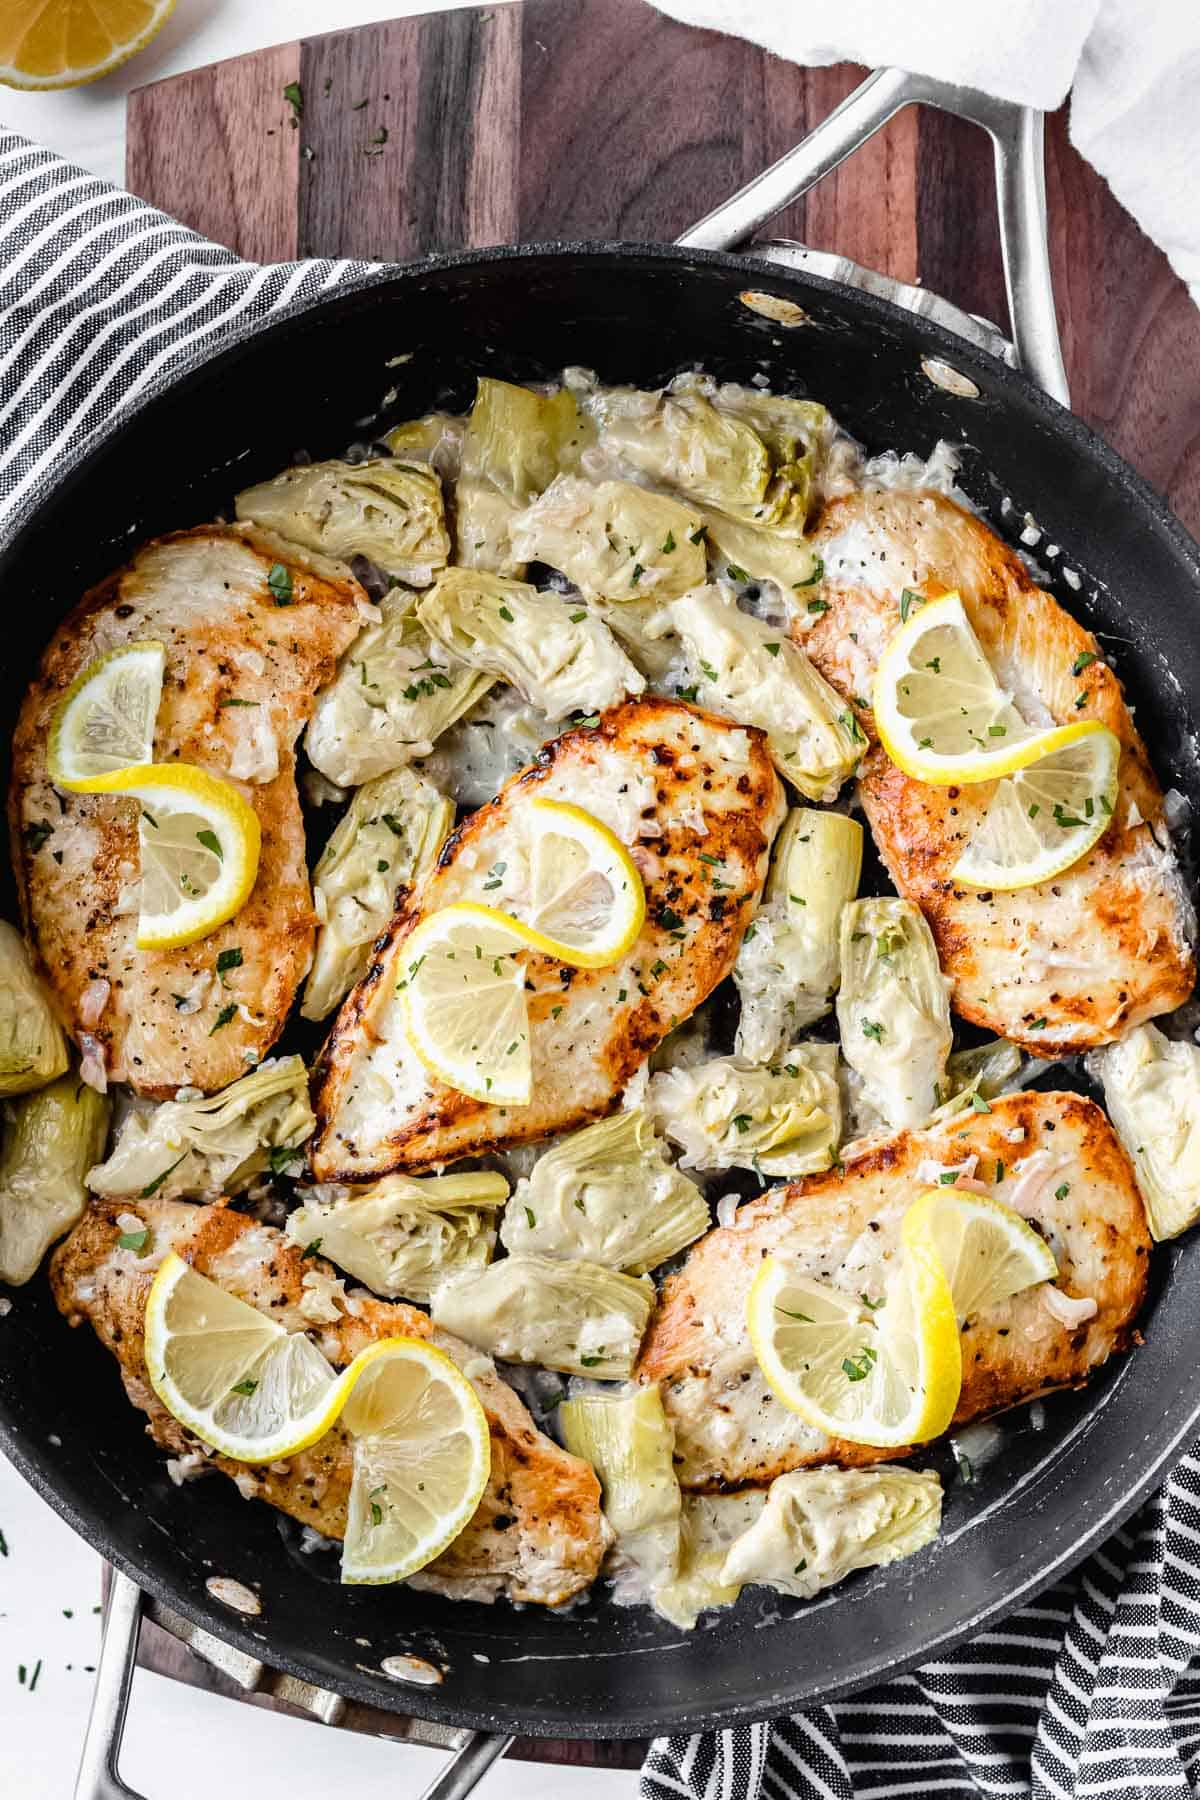 Overhead view of creamy lemon artichoke chicken in a black skillet over a wood board with a striped towel under it